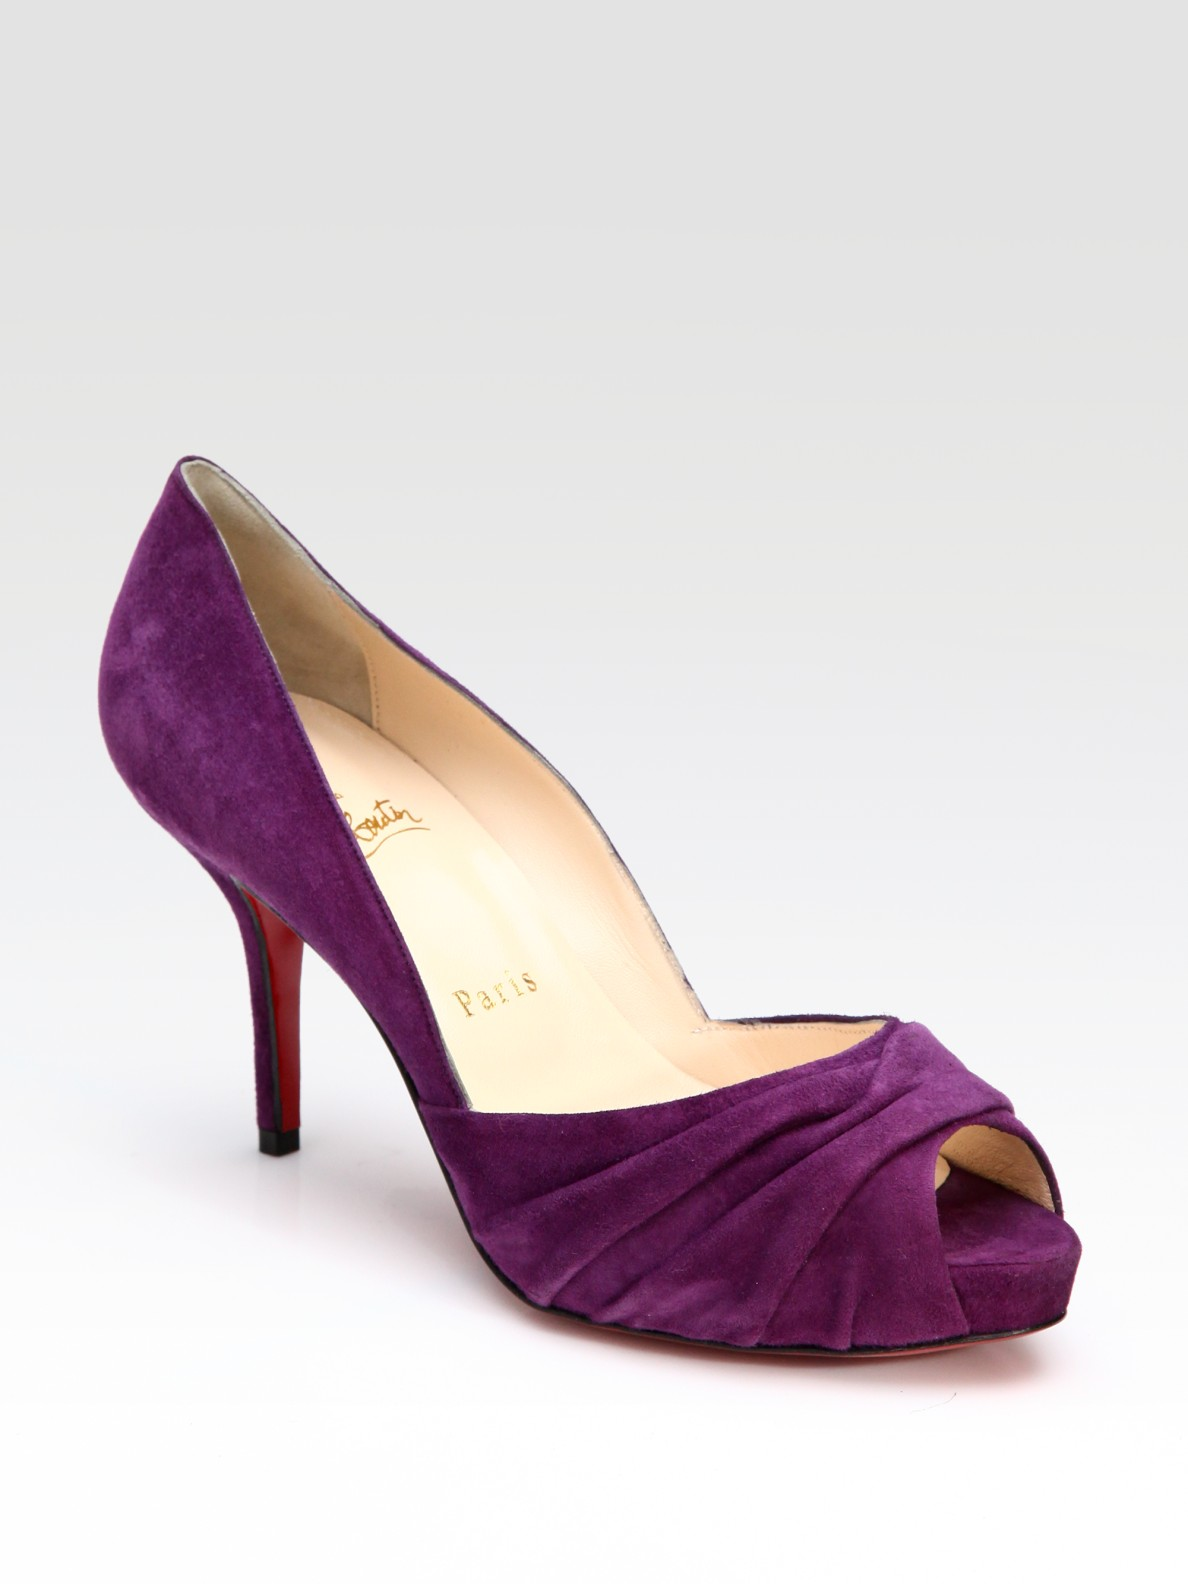 replica louboutin - Christian louboutin Pleated Suede Pumps in Purple | Lyst